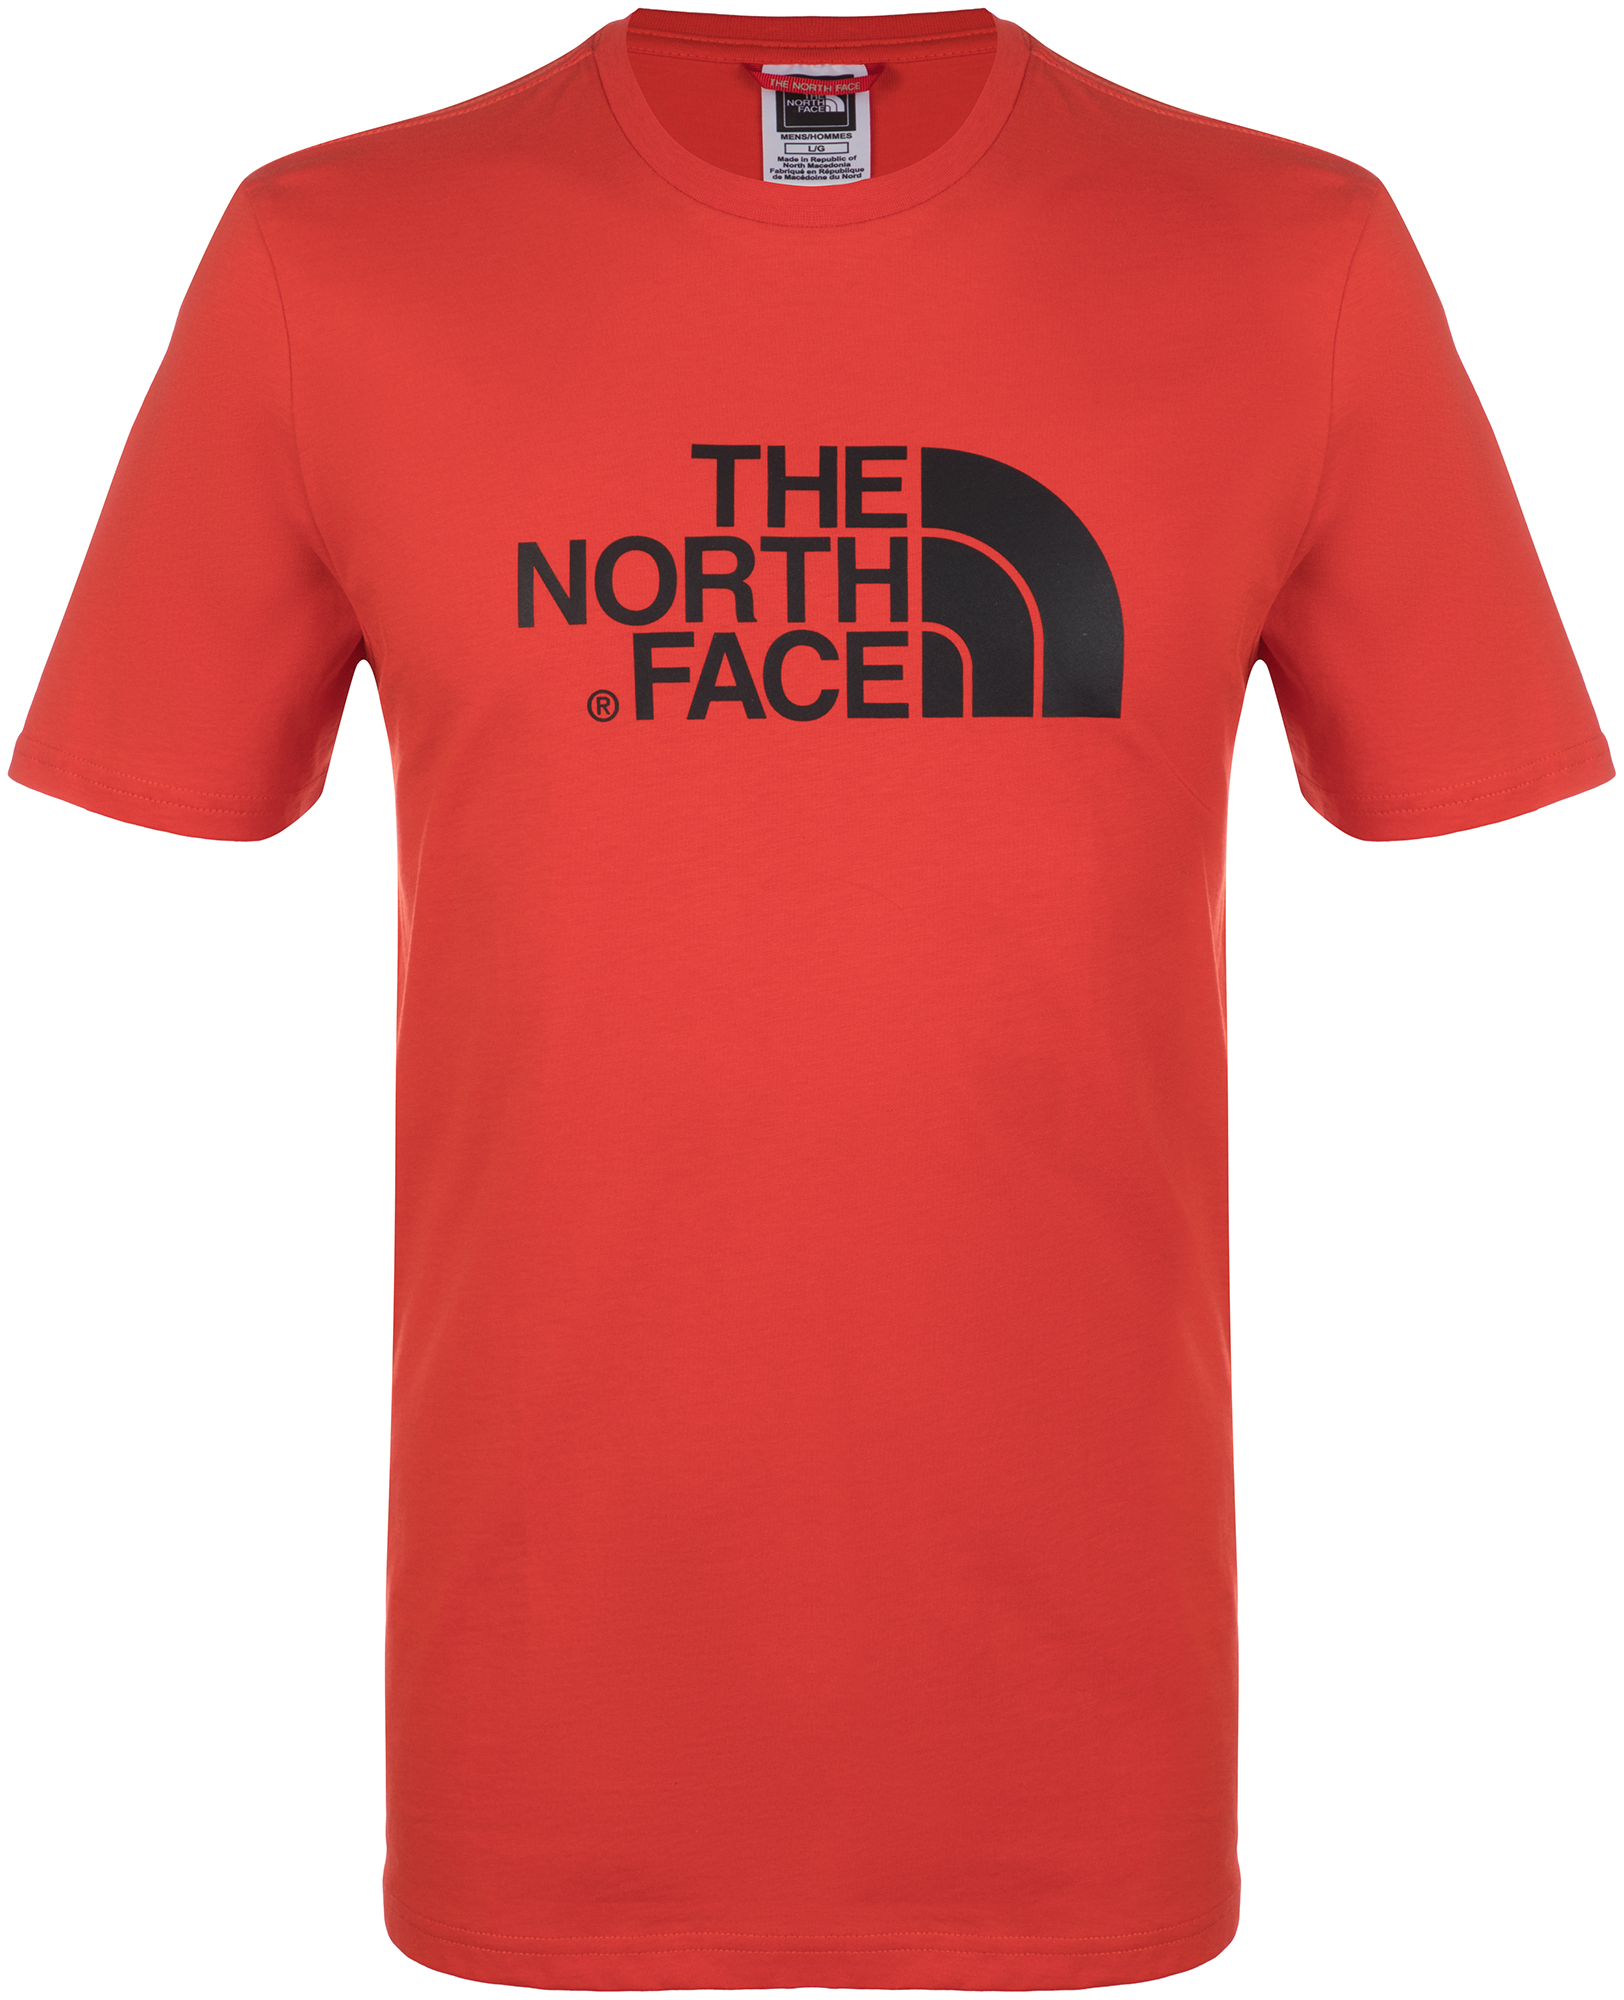 Фото - The North Face Футболка мужская The North Face Easy, размер 52-54 the north face футболка женская the north face easy размер 44